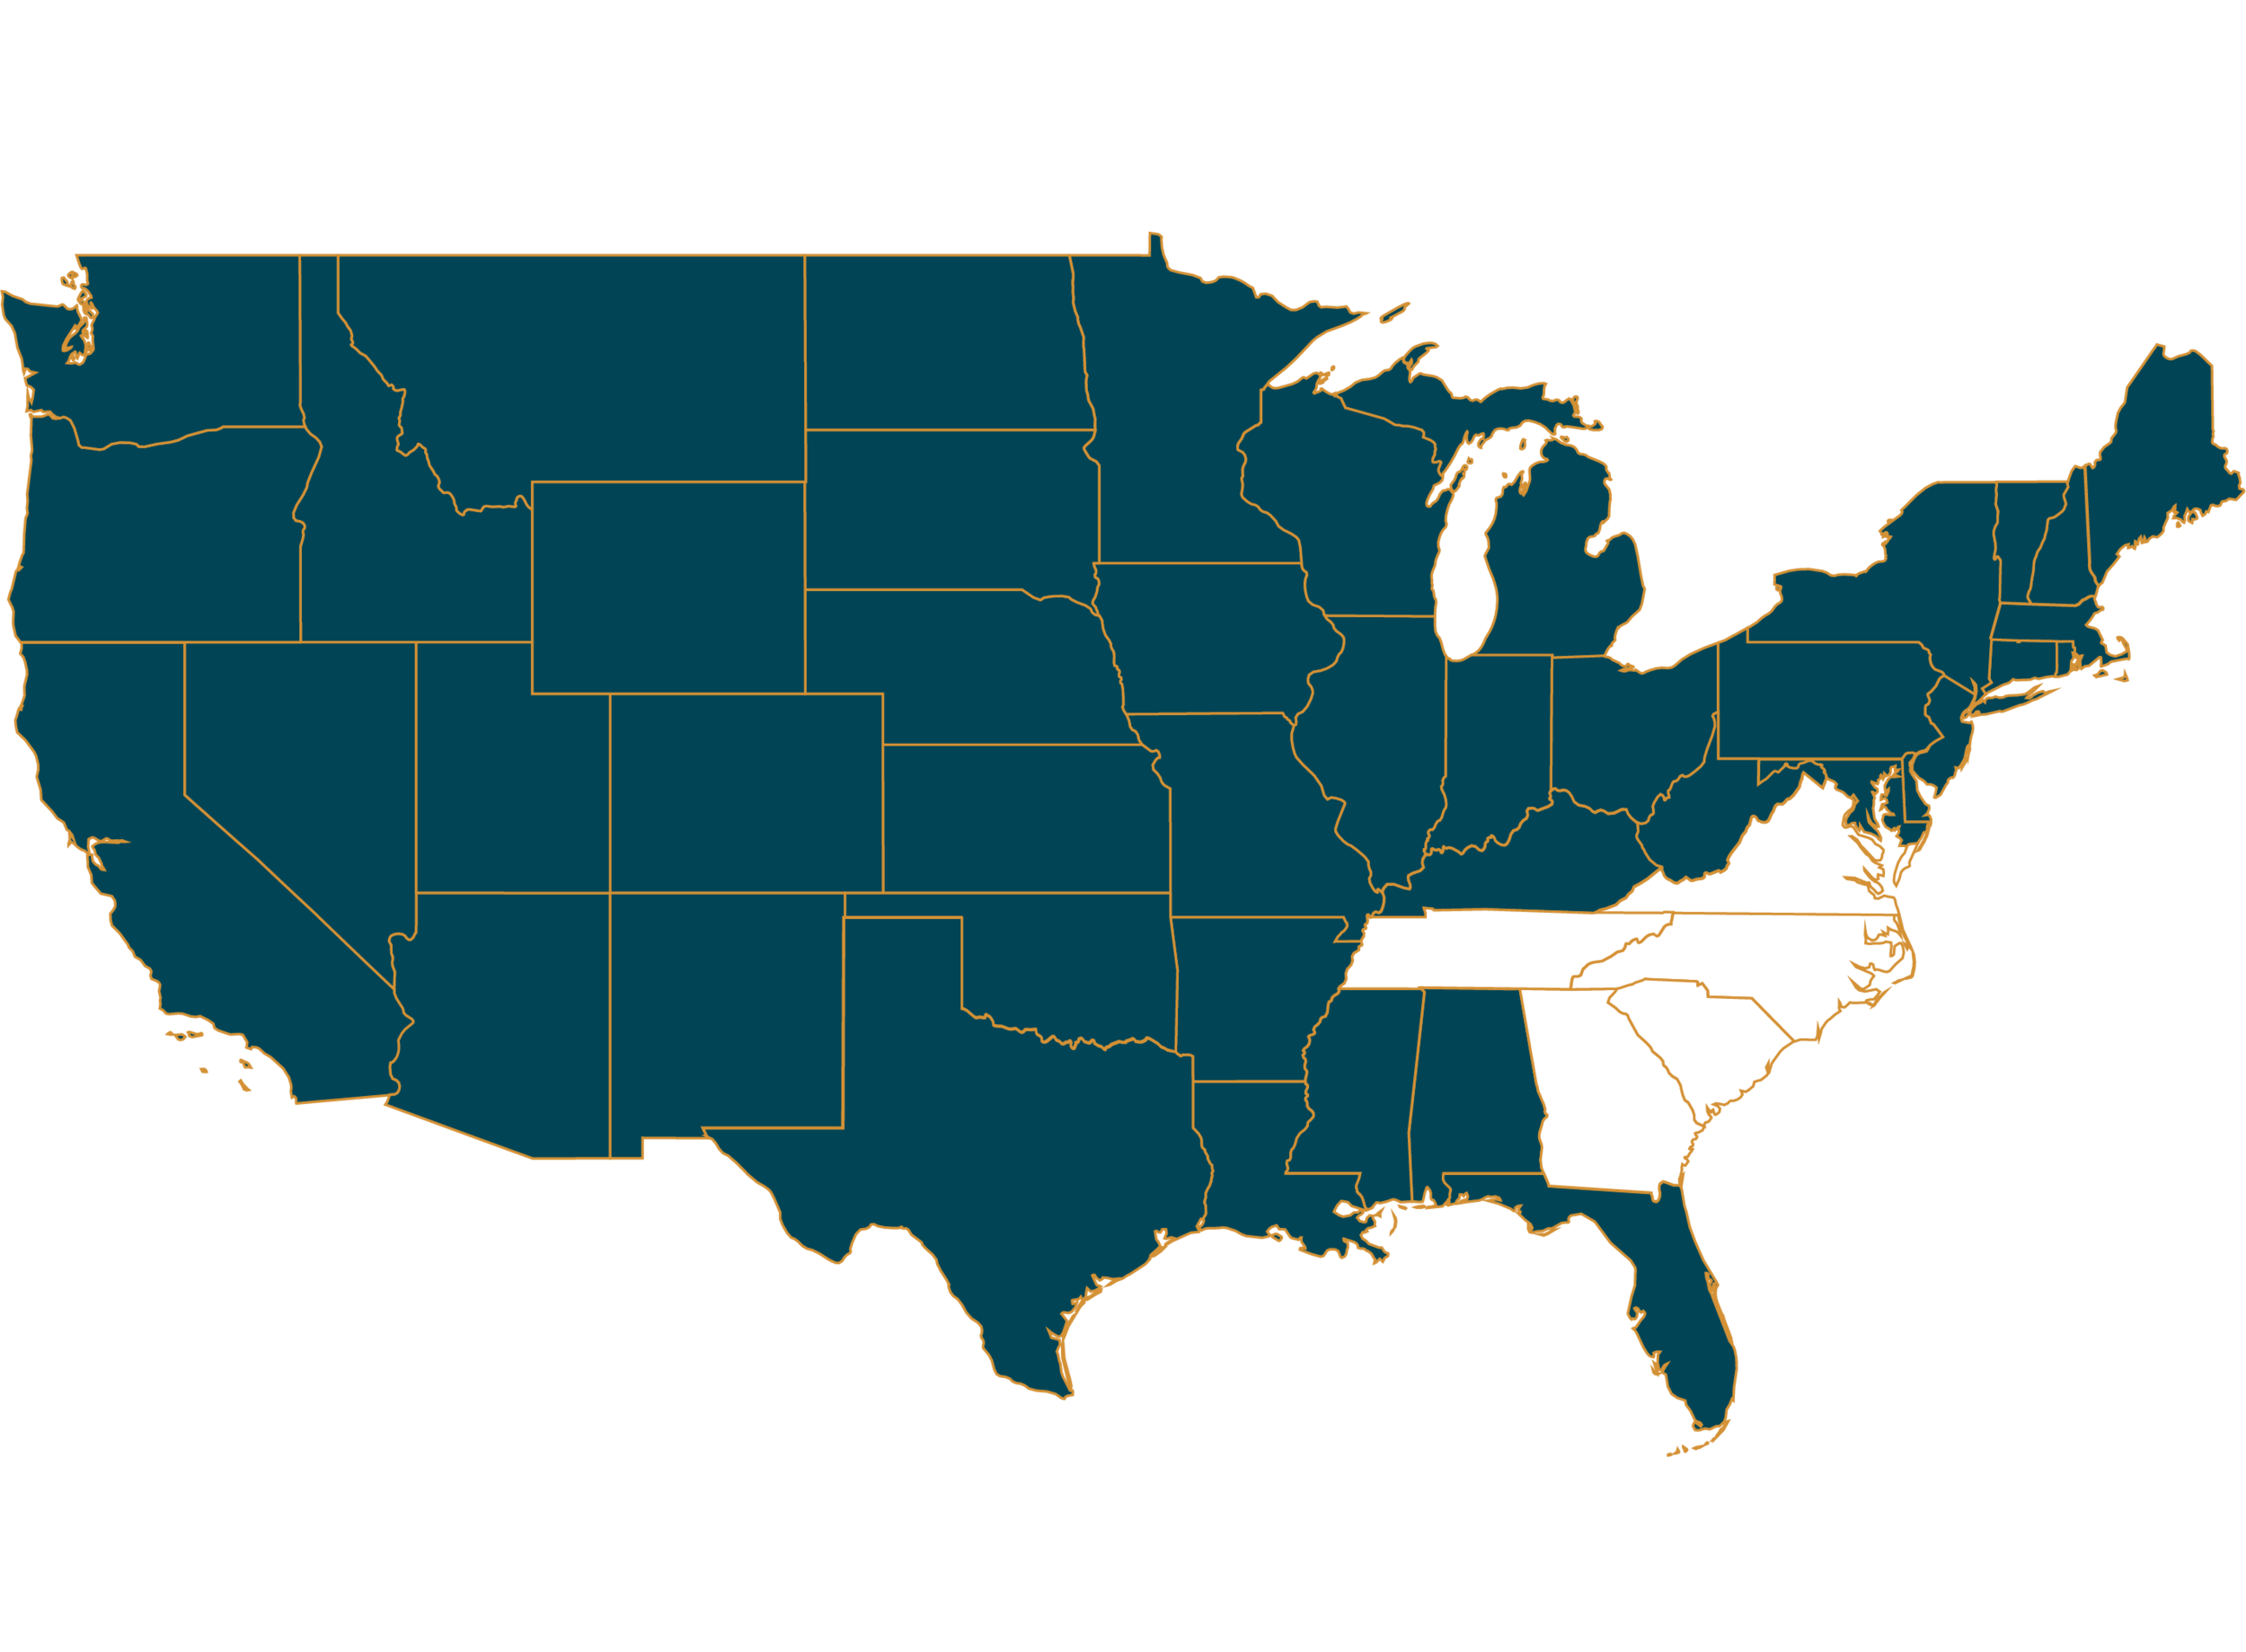 LOCATIONS - Standard Title provides direct underwriting for commercial title insurance services in North Carolina, South Carolina, Georgia, Tennessee and Virginia, underwritten by some of the most widely known and financially secure title insurers in the country: First American Title Insurance Company, Stewart Title Guaranty Company, WFG National Title Company and North American Title Insurance Company. In addition, Standard Title provides escrow, settlement and disbursement and 1031 exchange services nationally, so you always have a trusted partner, no matter where your transaction occurs.